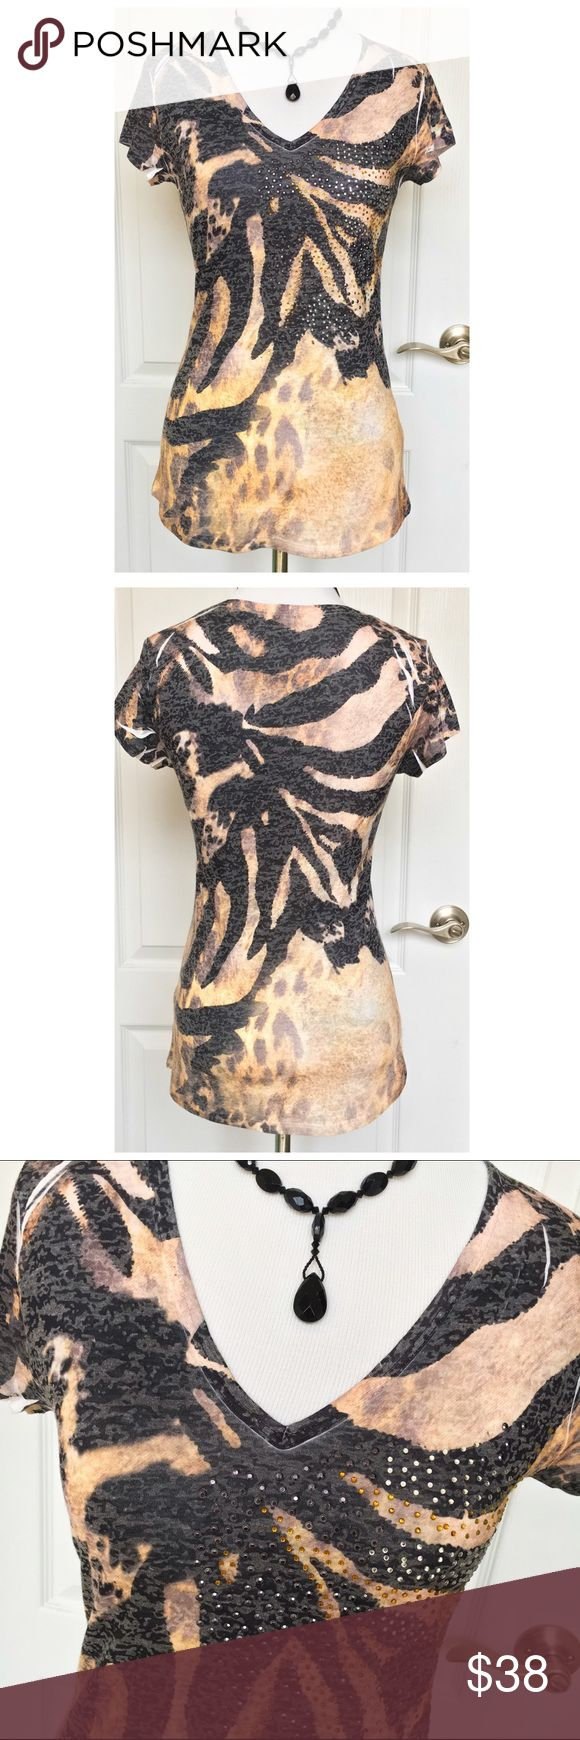 Cache Brown Black Animal Print Tee Shirt Top S In excellent condition! Polyester/cotton blend 50/50. Little decorative studs with different subtle animal prints all over. It's soft and comfortable. Easy to wear daily and has a super flattering fit! Cache Tops Tees - Short Sleeve